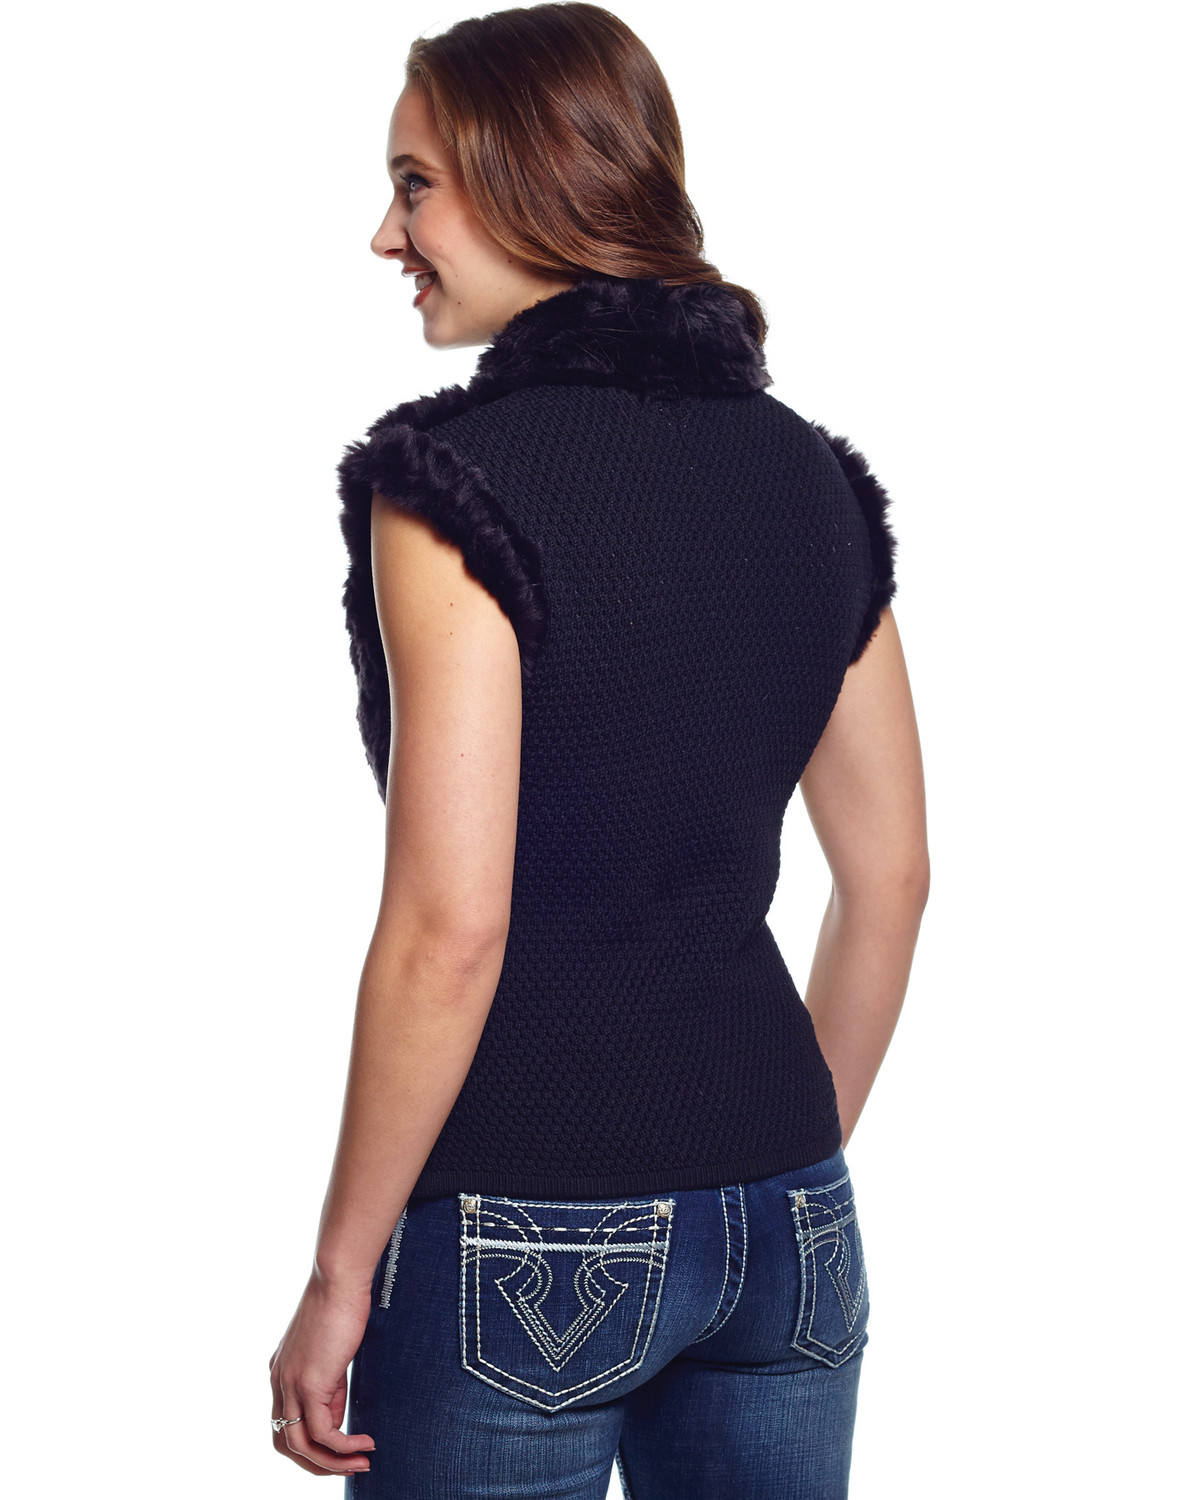 Cripple Creek Women's Faux Fur Black Sweater Vest | Boot Barn